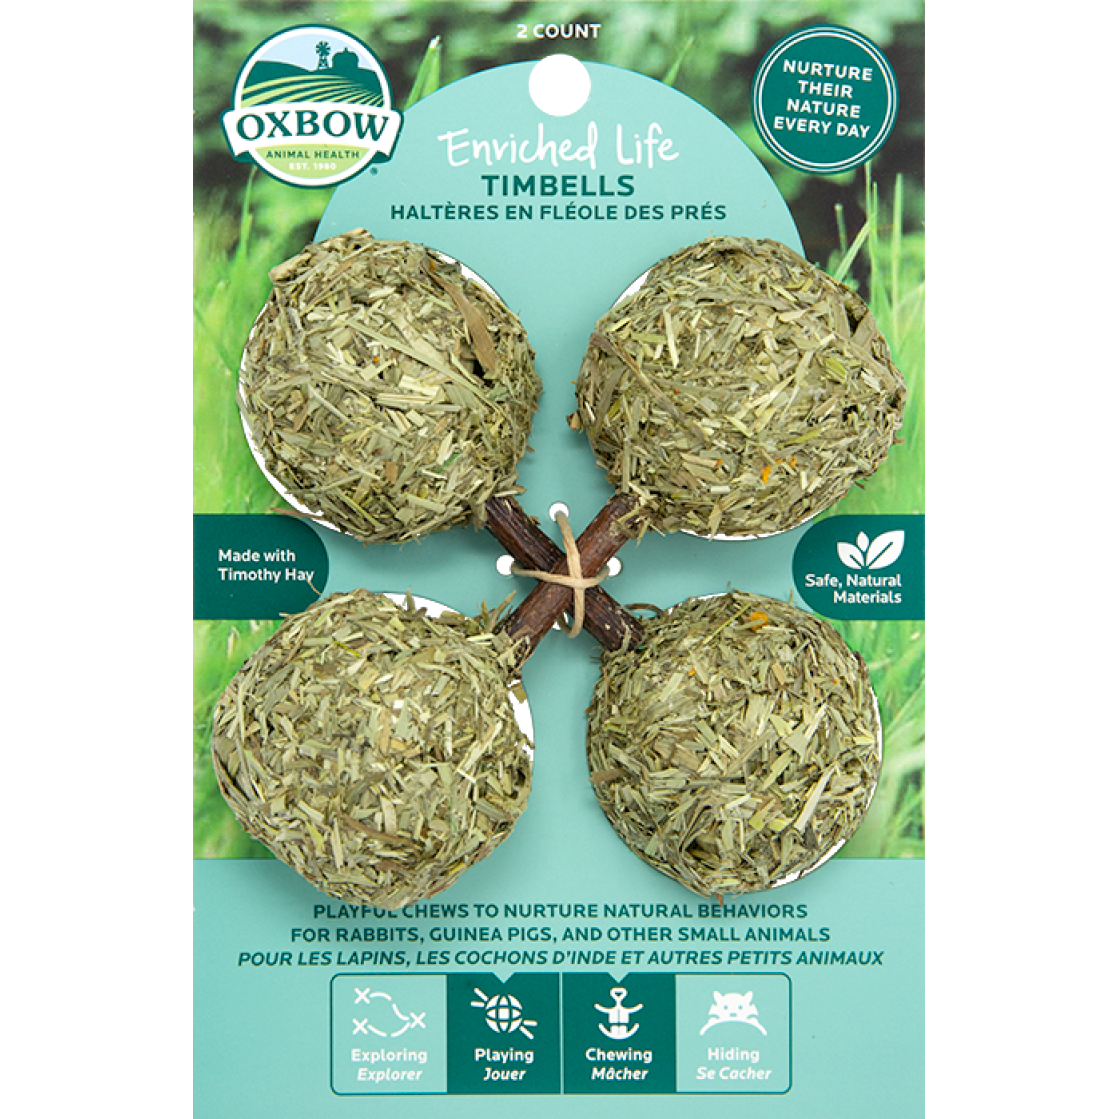 Oxbow Enriched Life Hay Chew Treats - Timbells